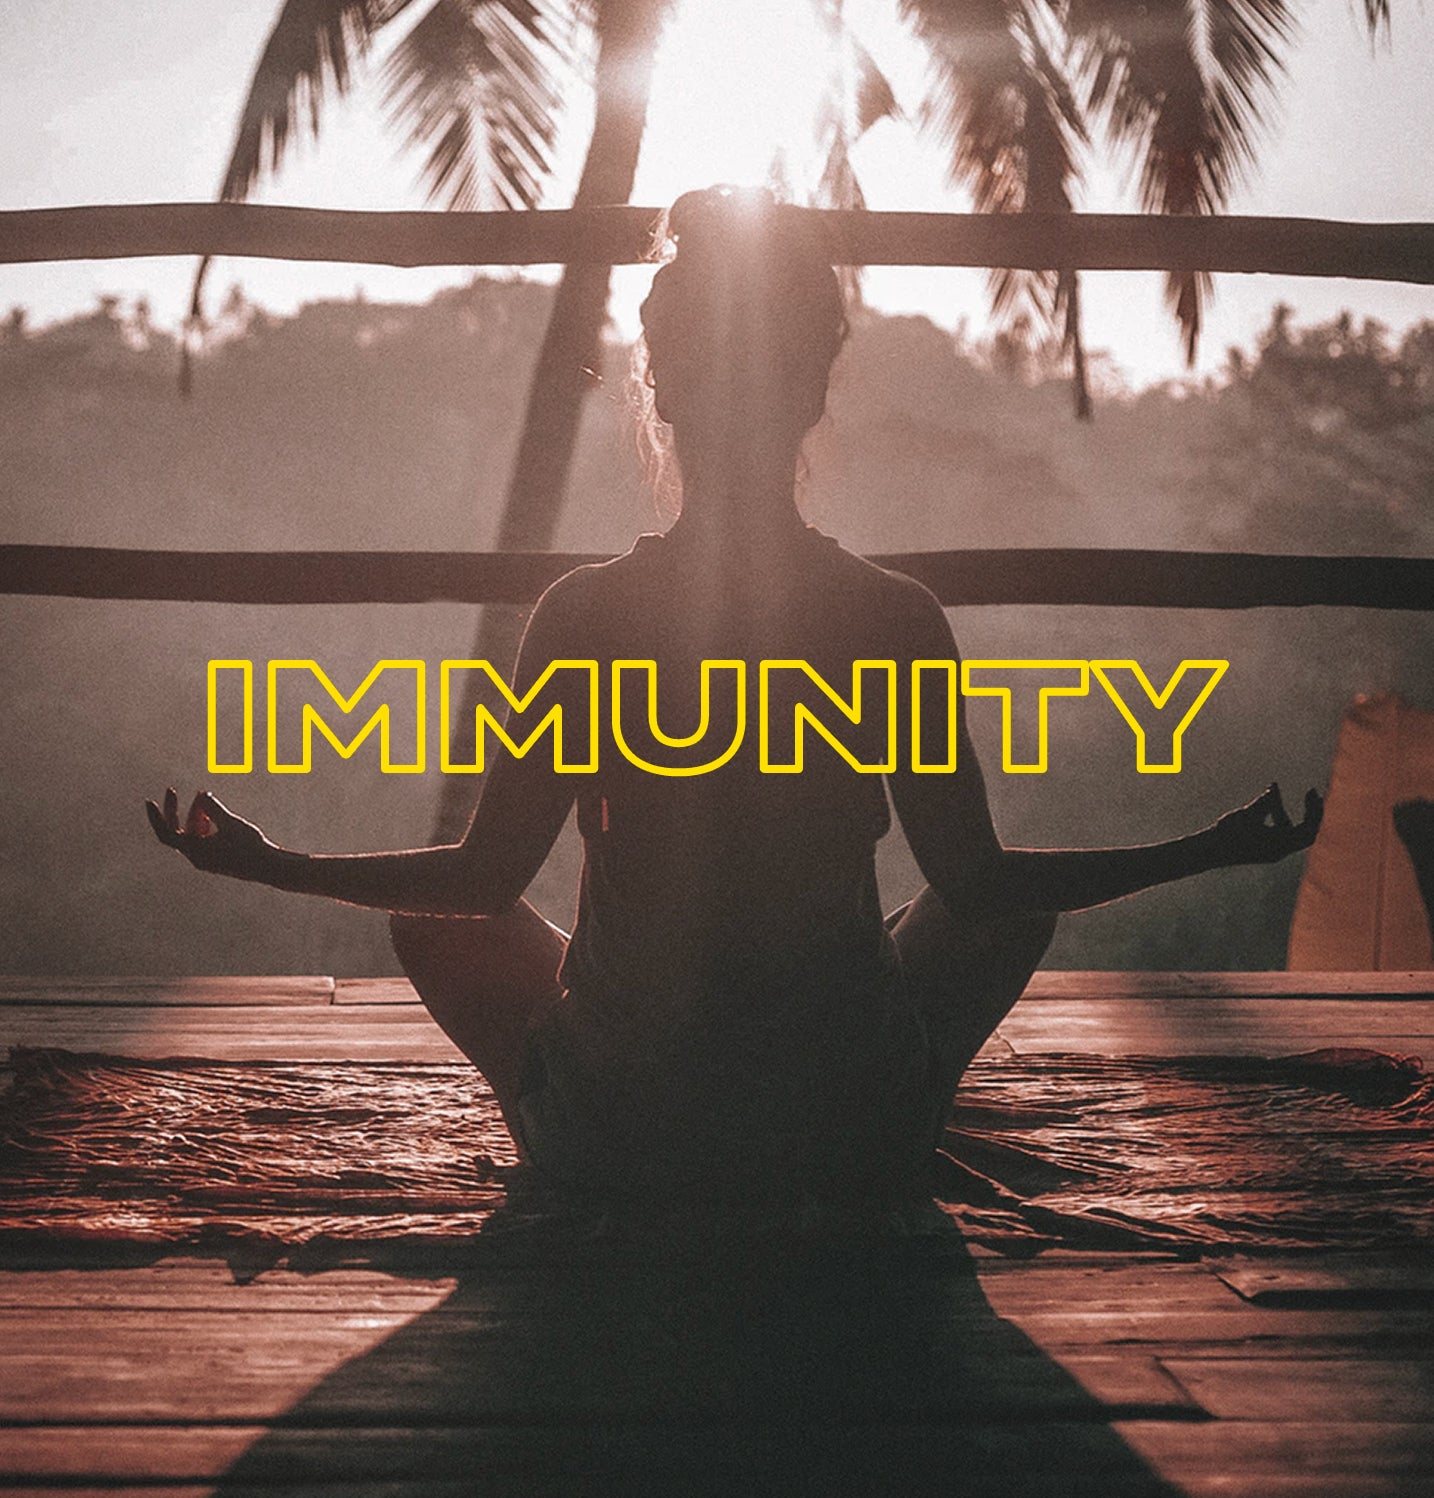 Let's Talk About Immunity